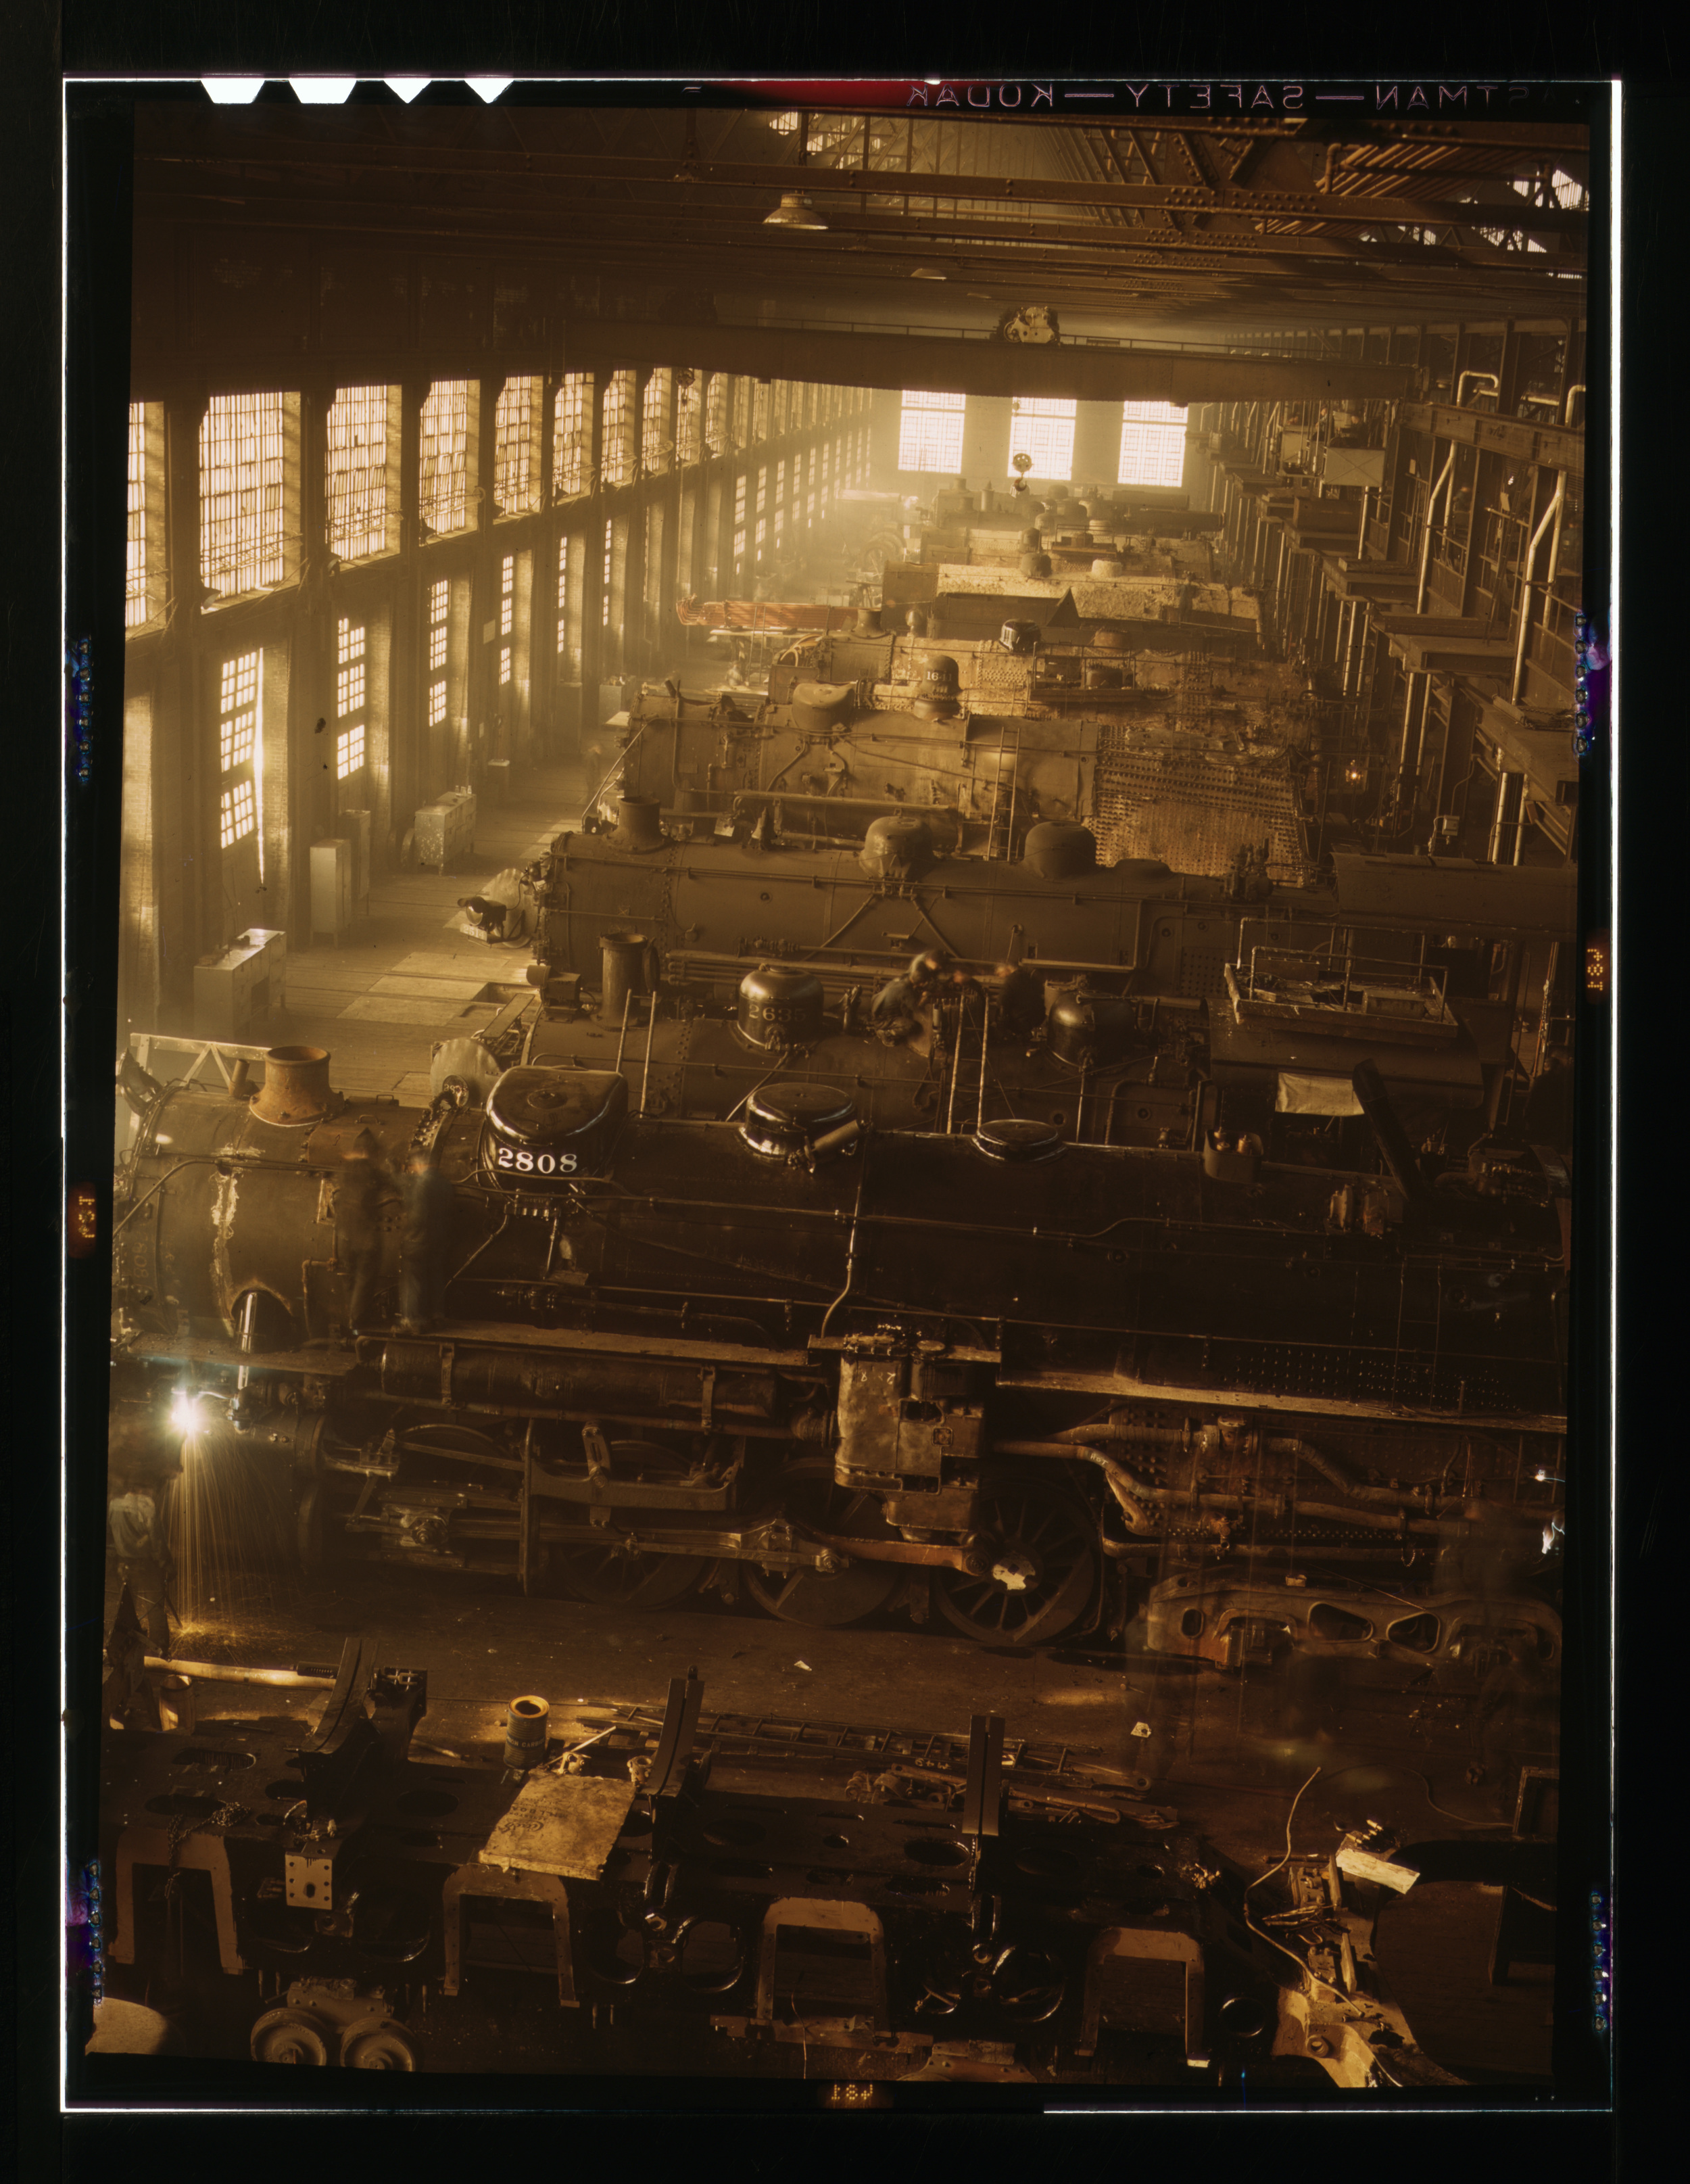 Chicago and Northwestern locomotive repair shop